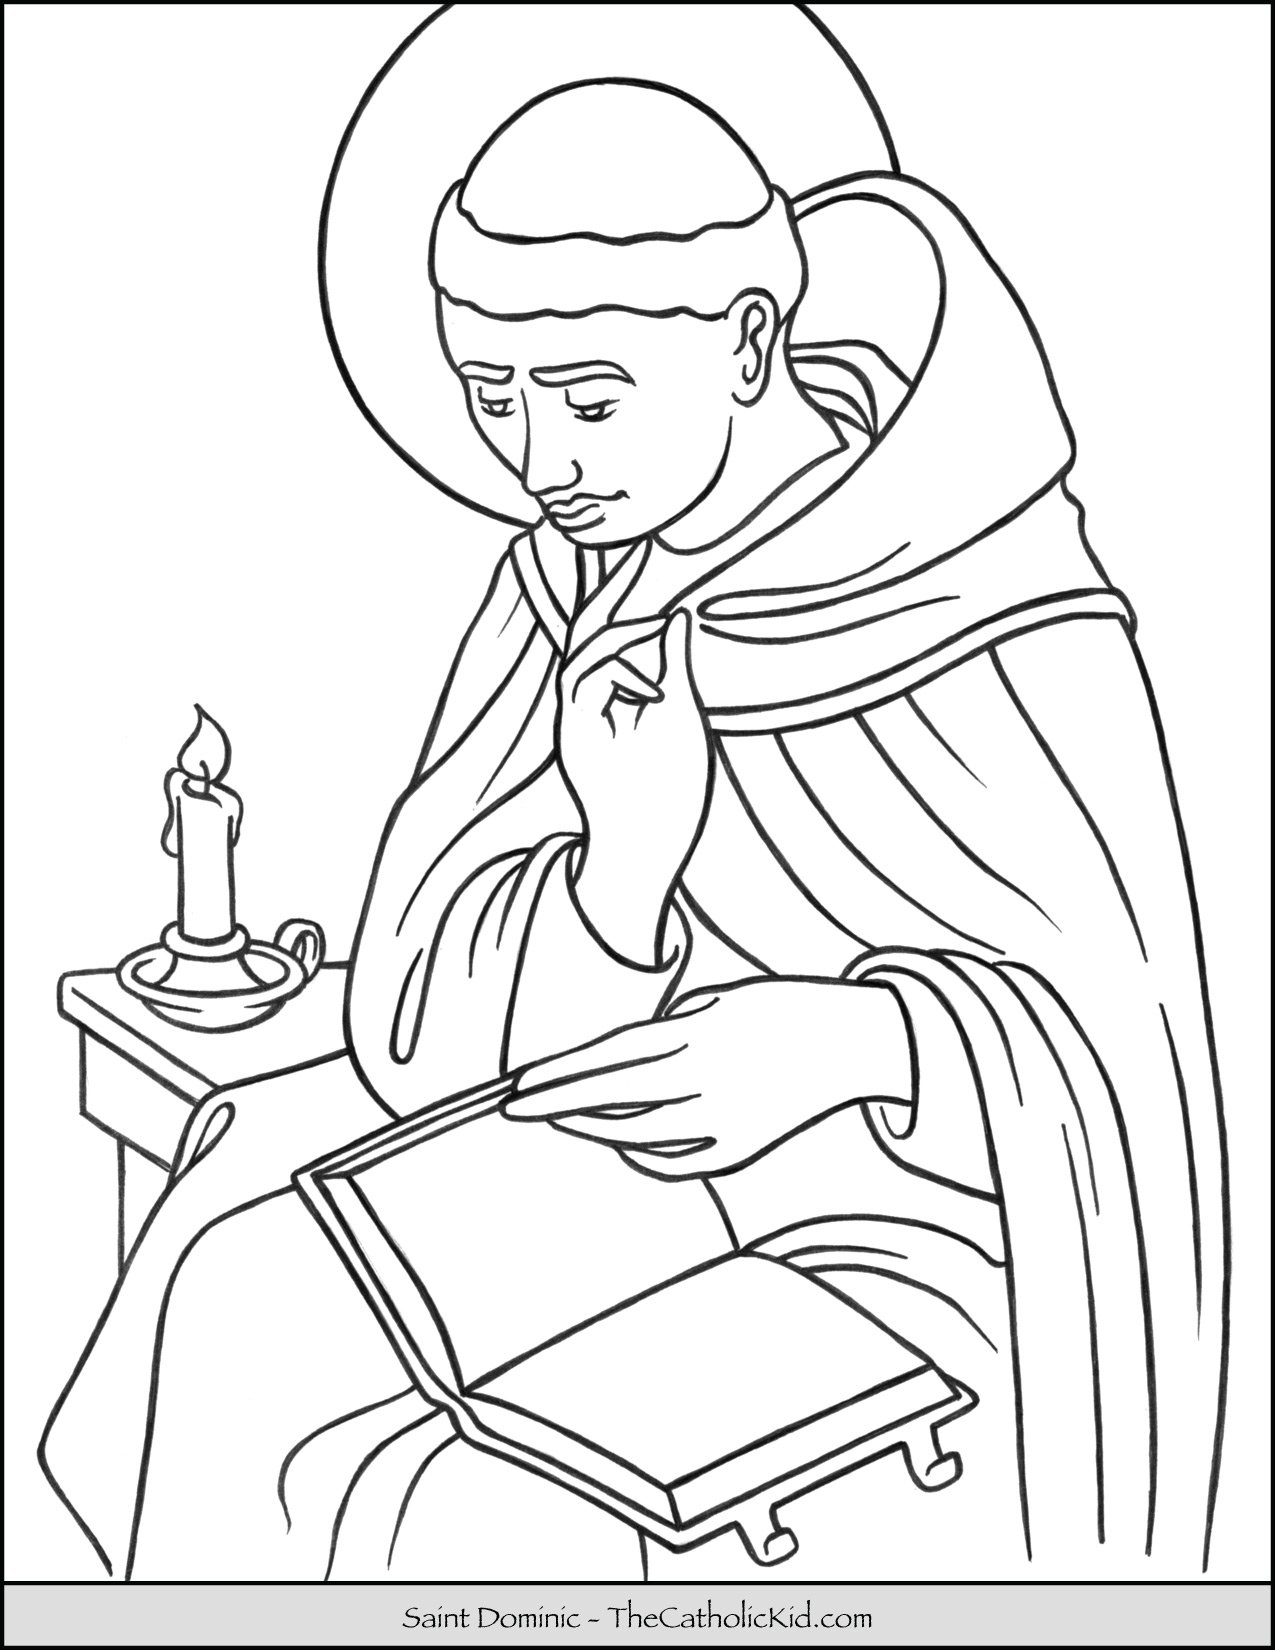 Saint Dominic Coloring Page